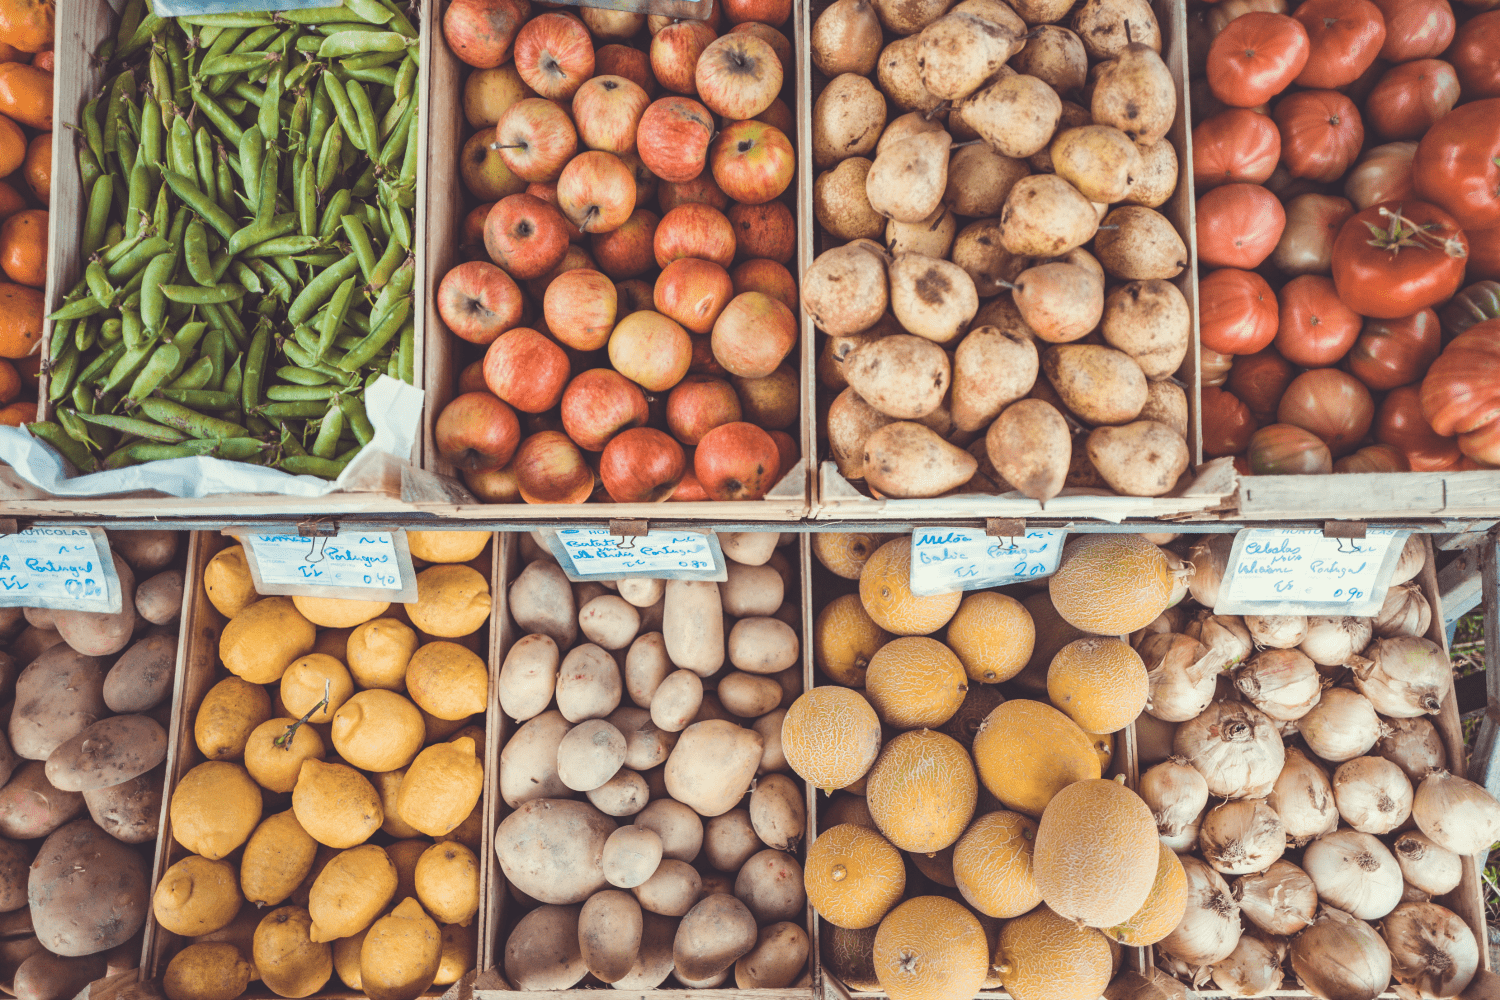 A market with bins full of fresh produce is where to go to learn how to eat more whole foods.